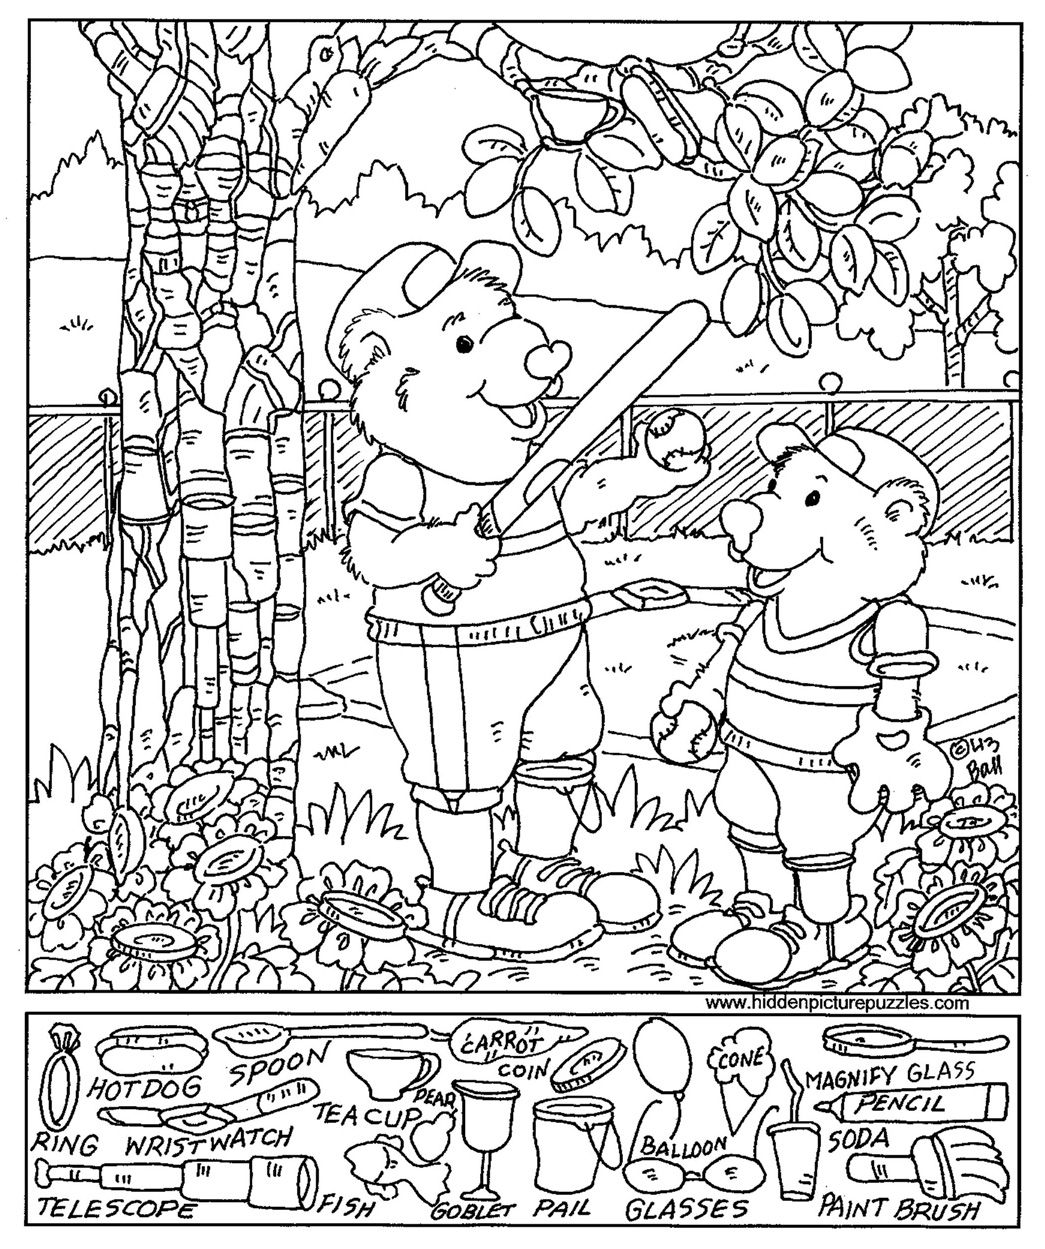 find the object games printable topsy turvy land activities coloring pages poetry and find object the games printable